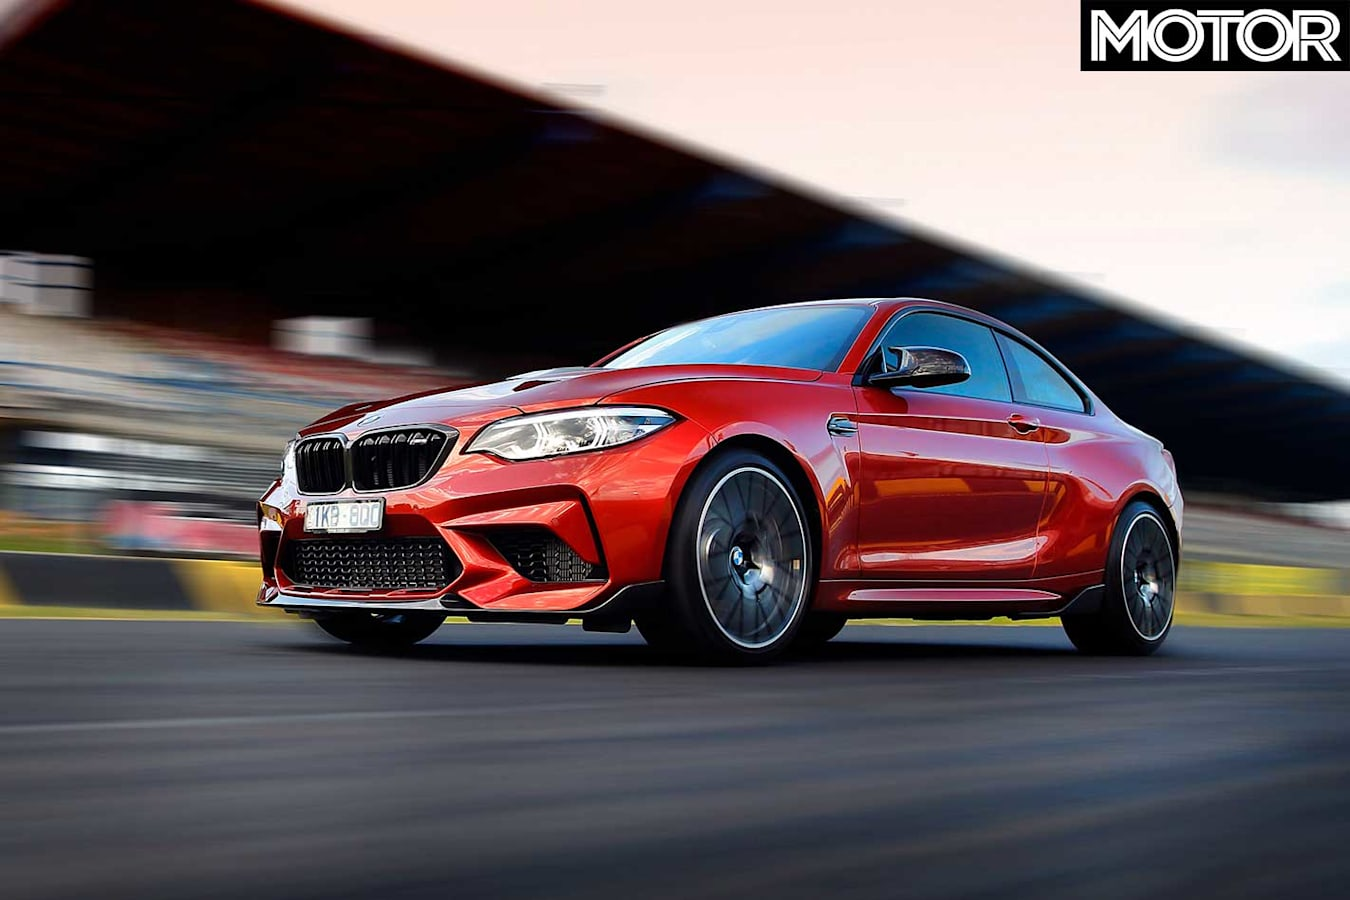 MOTOR PCOTY 2019 BMW M 2 Competition Jpg